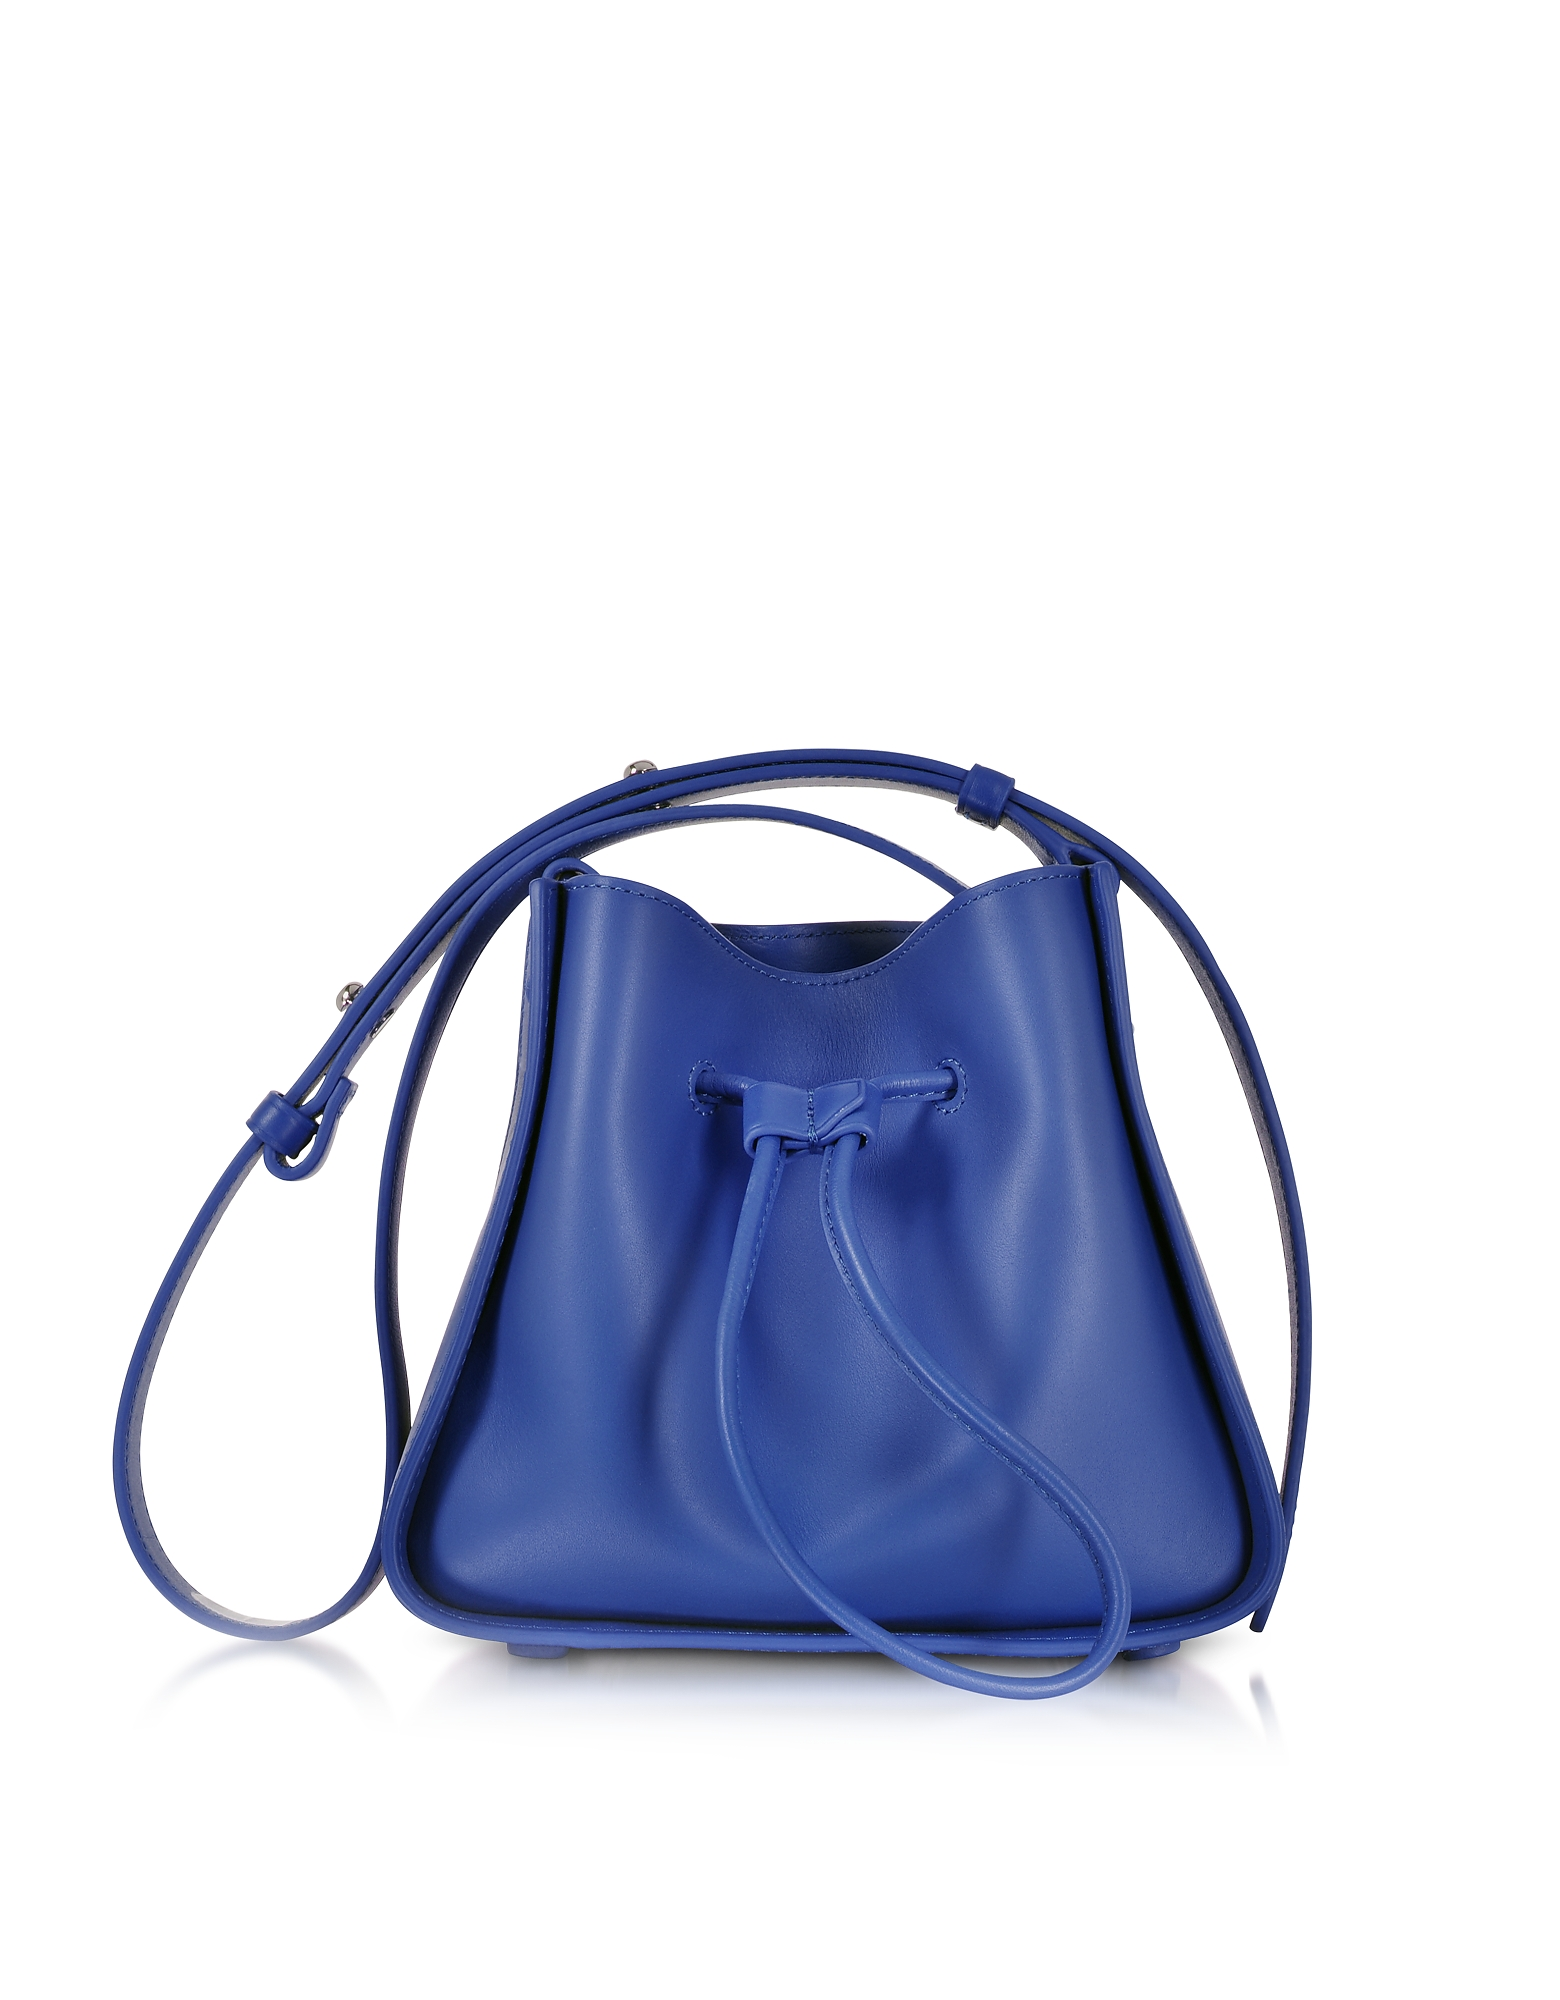 3.1 Phillip Lim Handbags, Cobalt Blue Soleil Mini Drawstring Bucket Bag